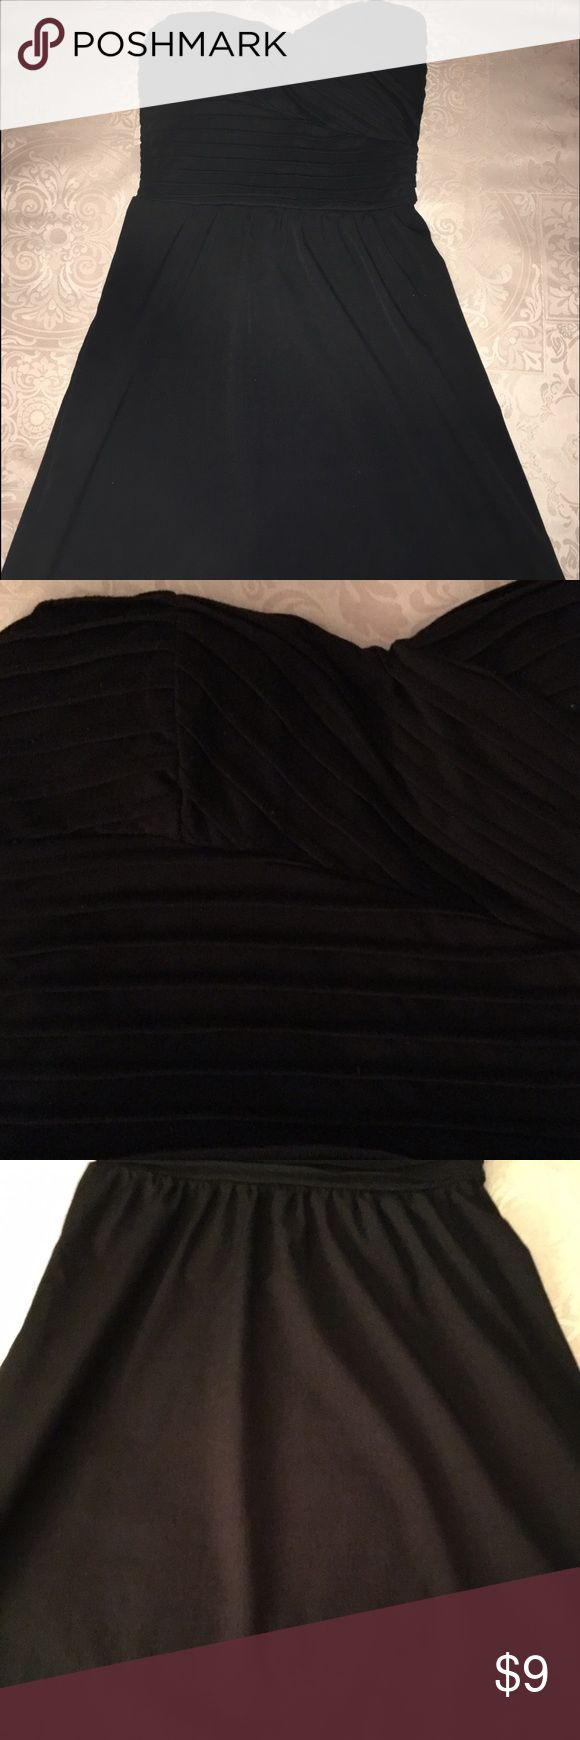 Guess dress size small Guess size small black tube top dress. Great quality! Worn one time. Light and sweet dress. Very slimming and cute! Guess Dresses Mini